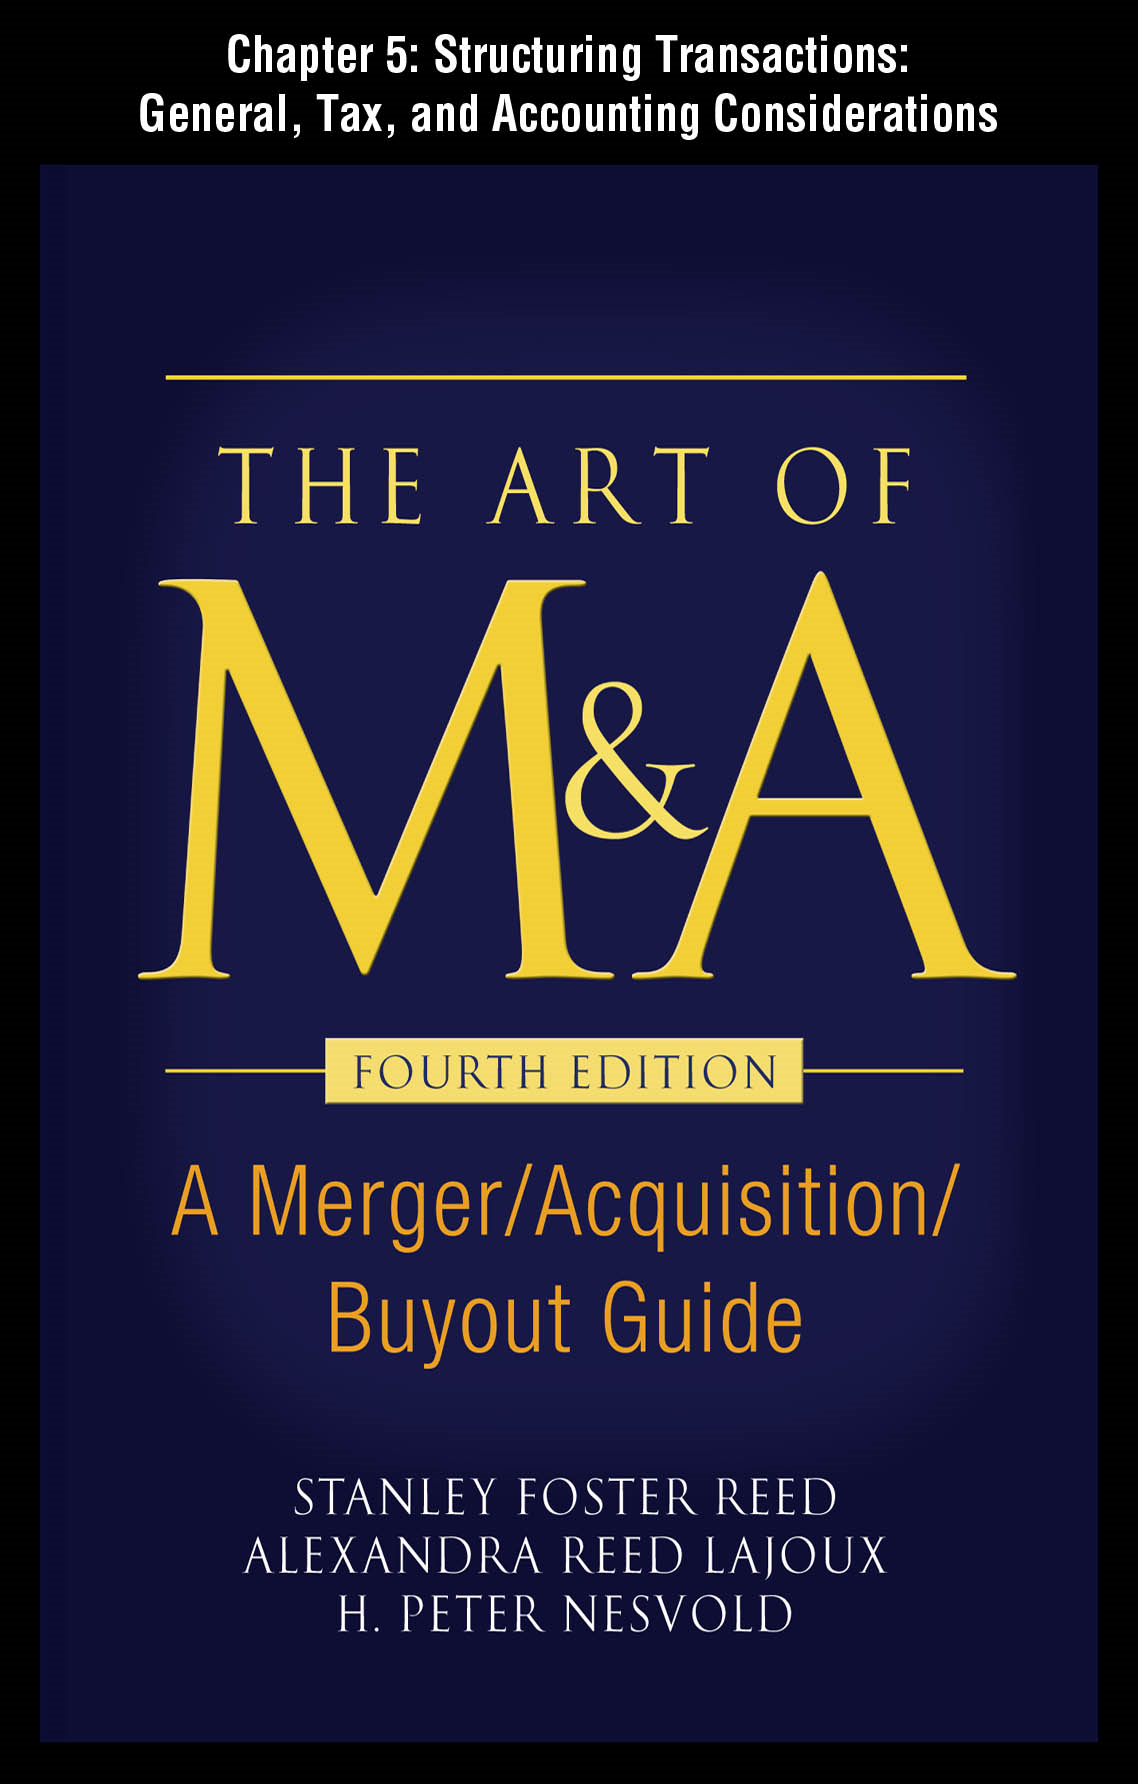 The Art of M&A, Fourth Edition, Chapter 5 - Structuring Transactions: General, Tax, and Accounting Considerations